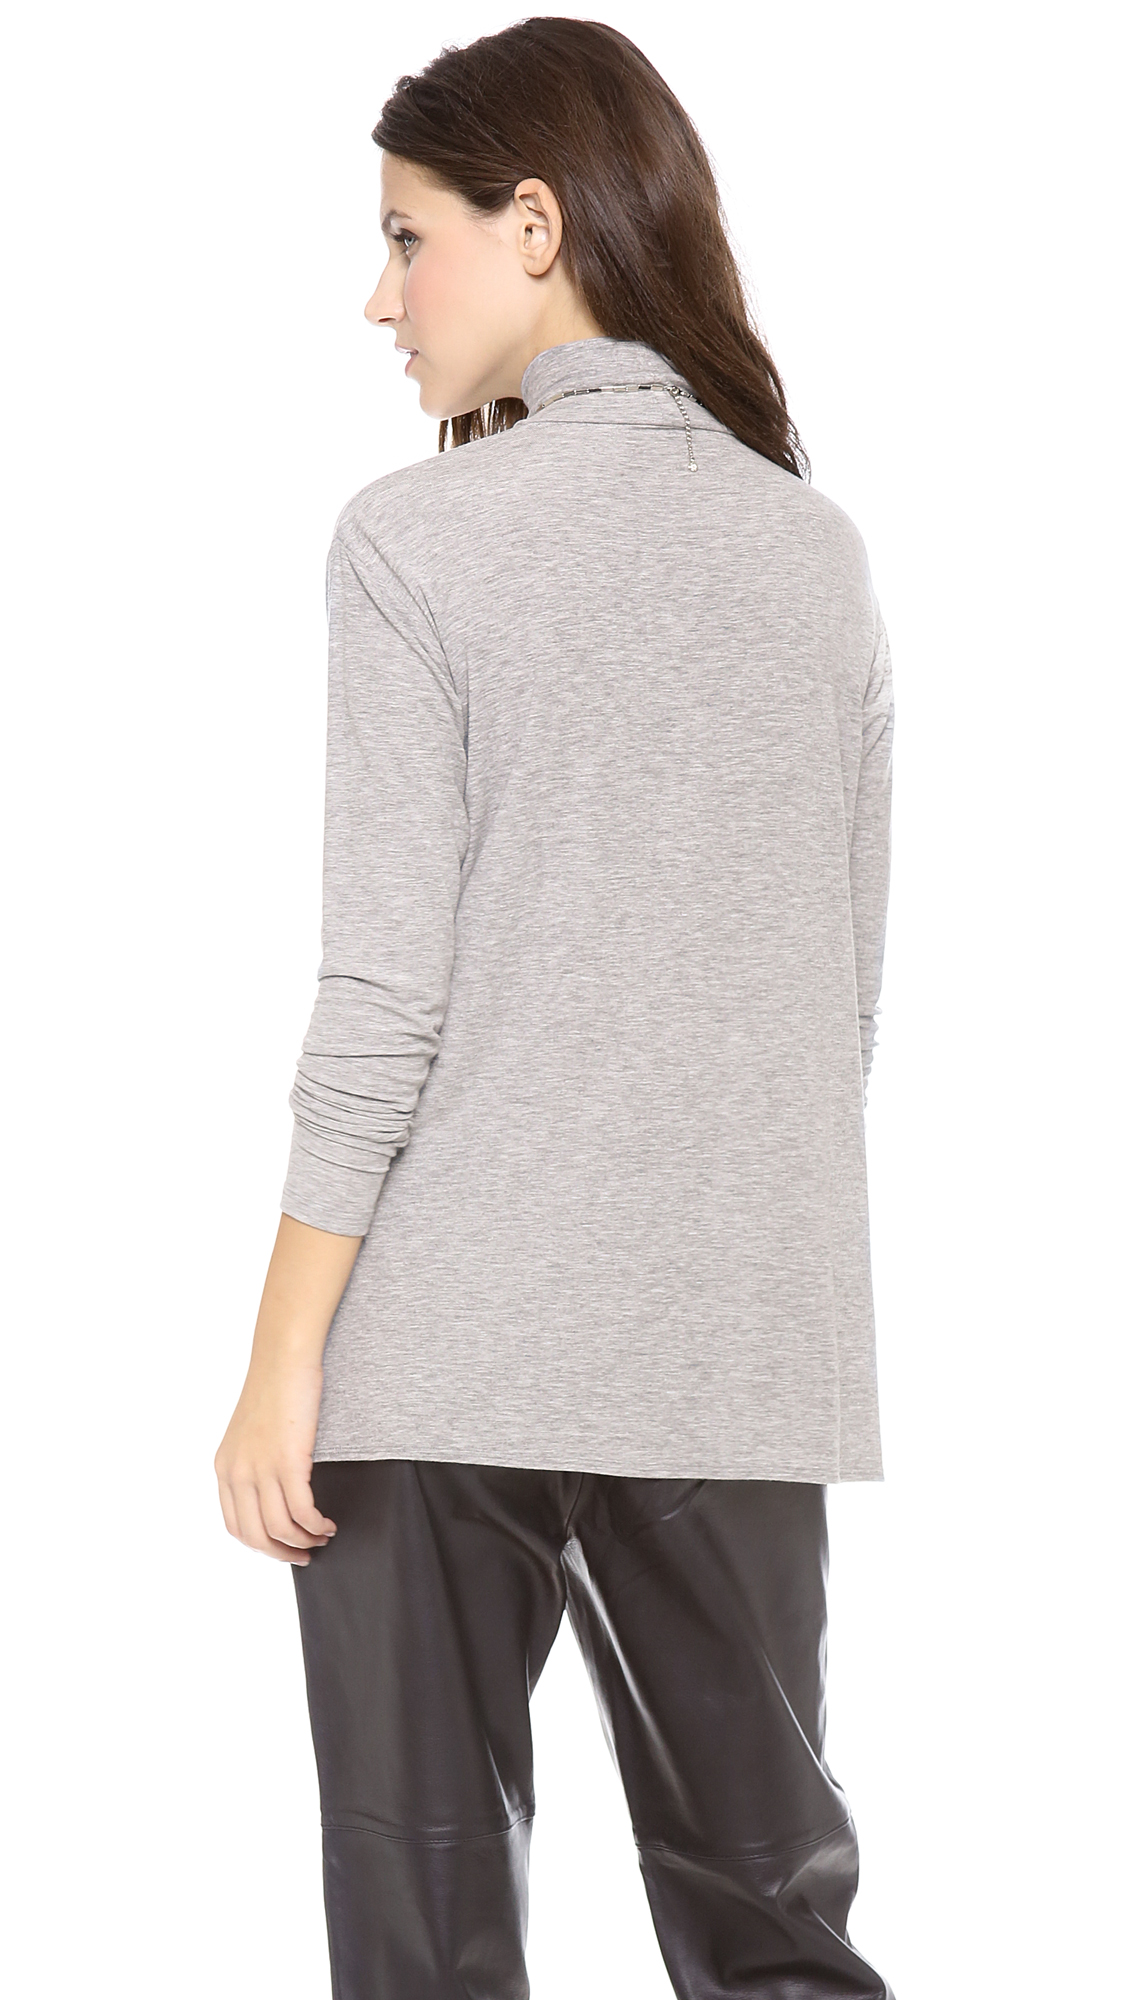 Theory Ribbed Turtleneck Sweater in Gray | Lyst